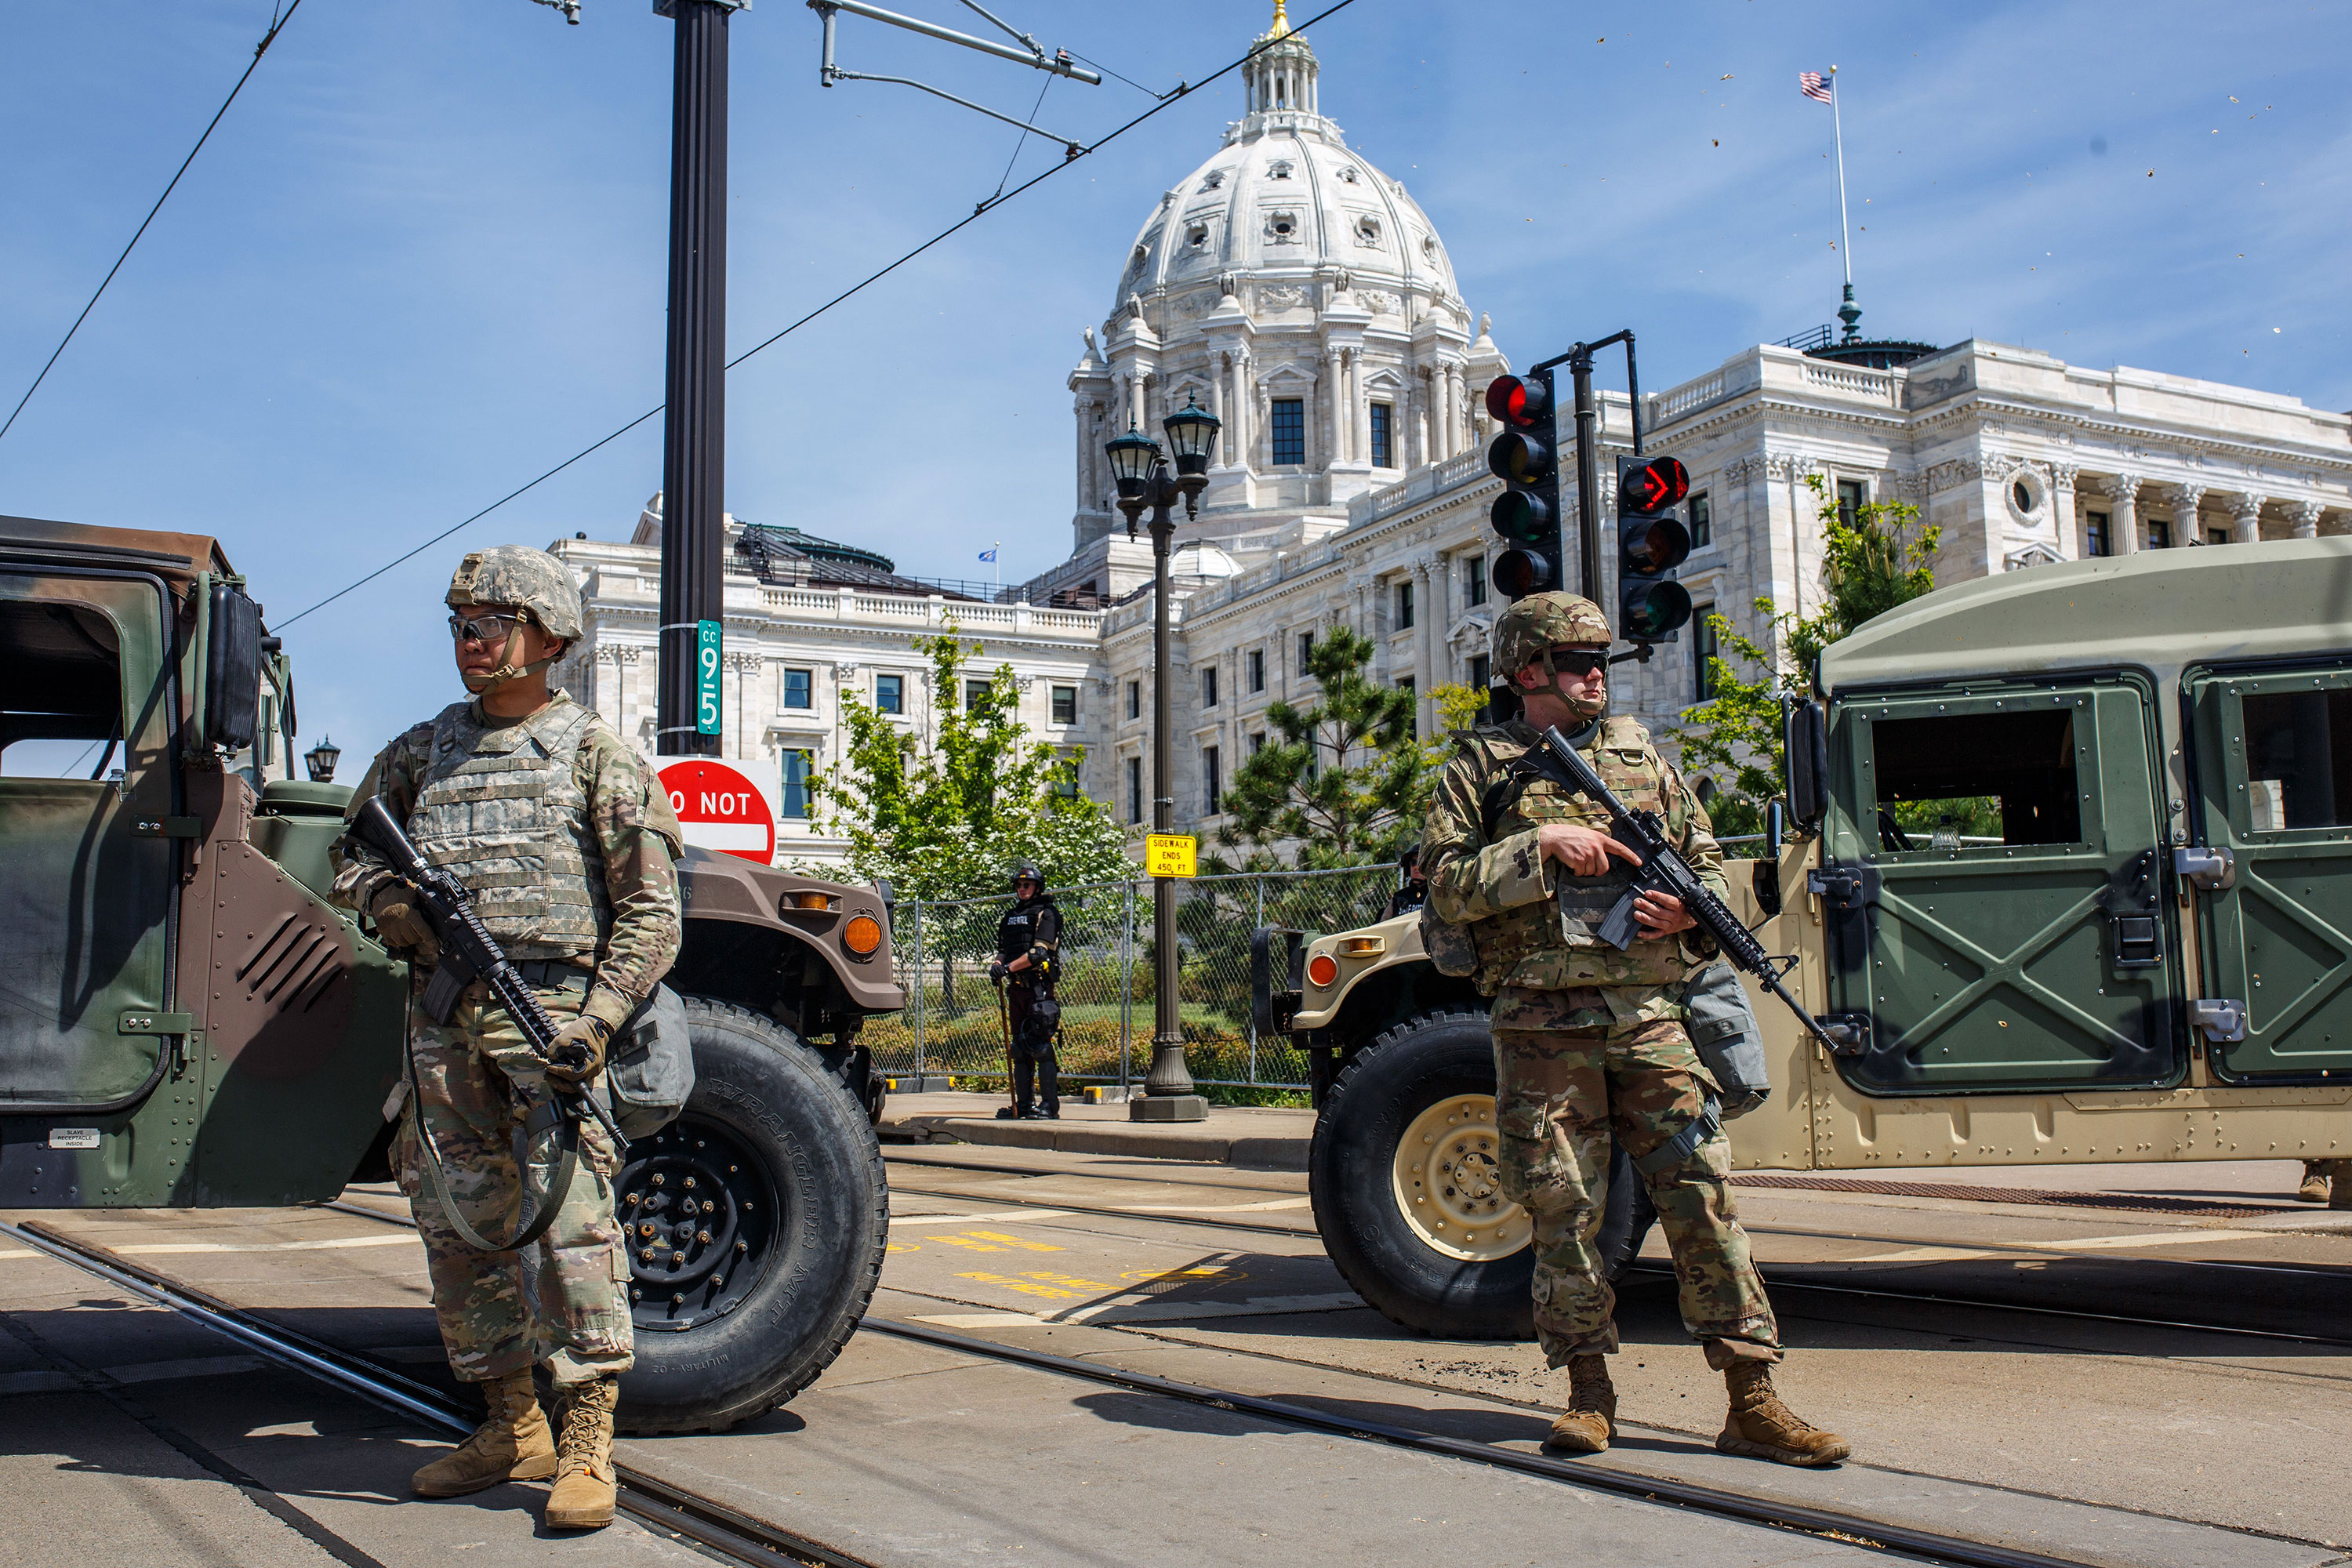 National Guard soldiers stand outside of the Minnesota Capitol in St. Paul, Minnesota, on May 31, 2020.